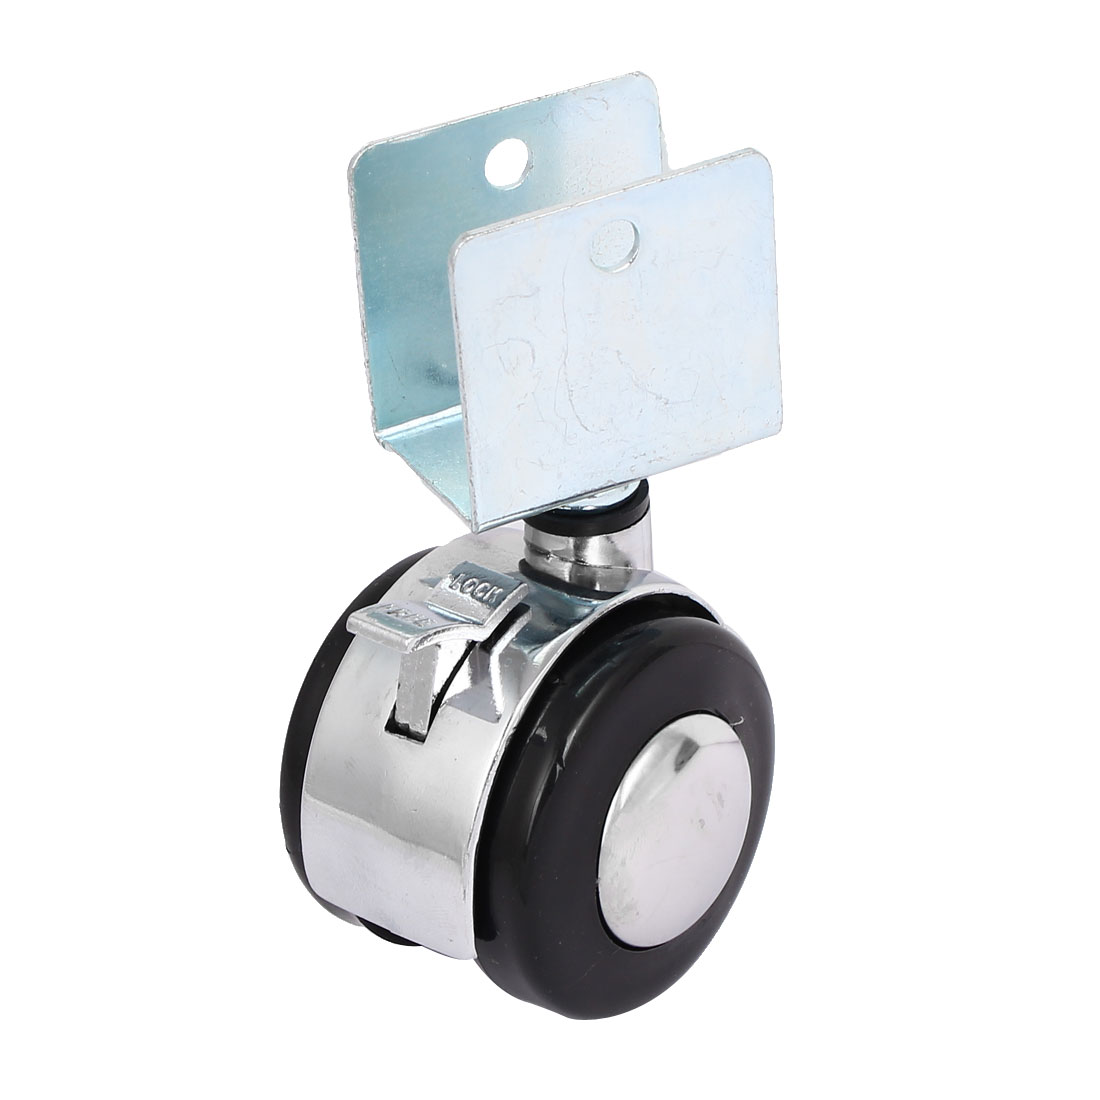 2'' Diameter Wheel 360 Degree Rotatable Top Clamp Clip Swivel Caster